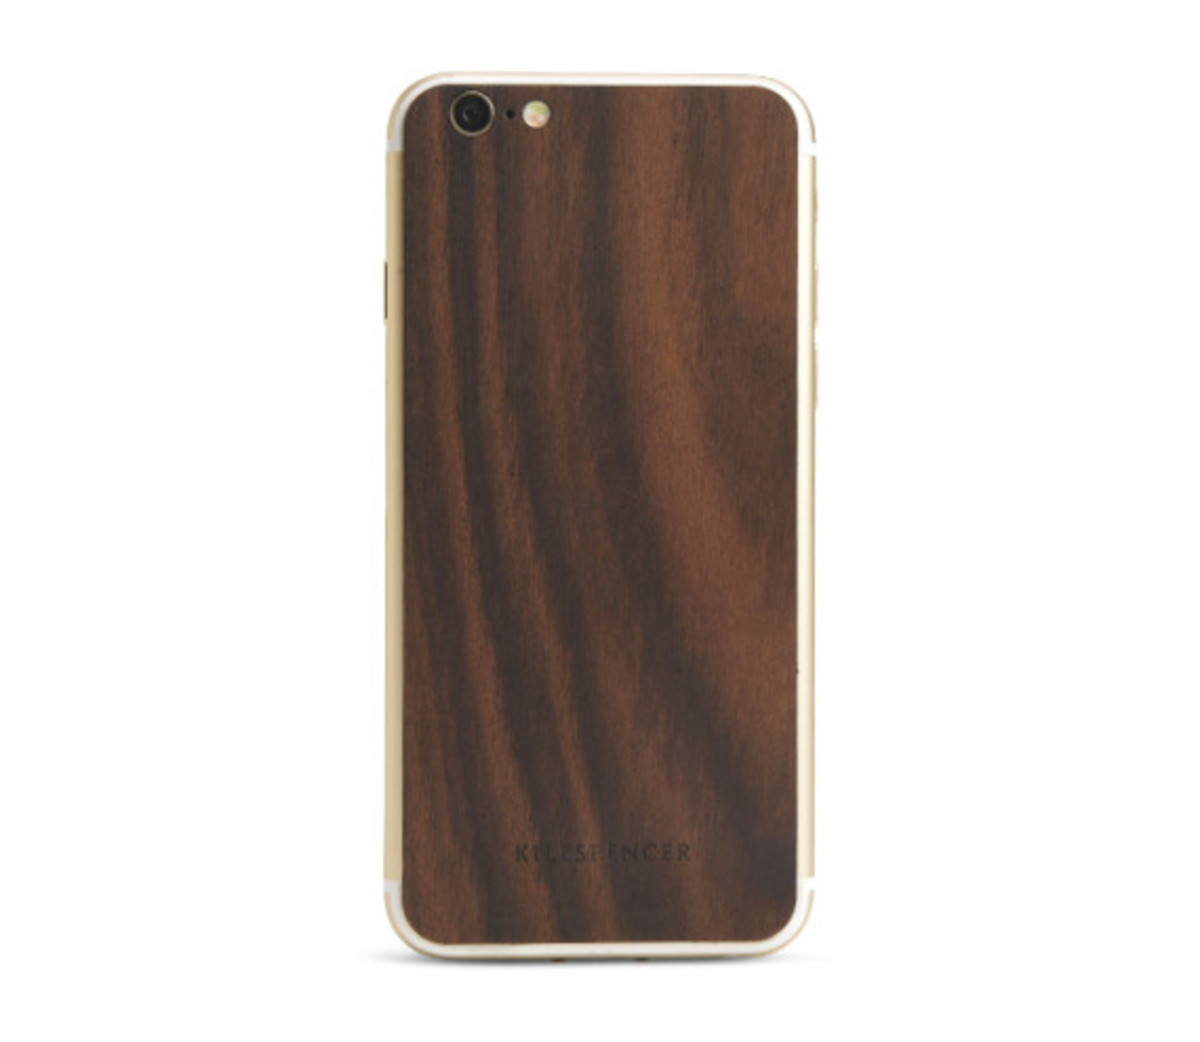 killspencer-iphone-6-accessories-collection-09